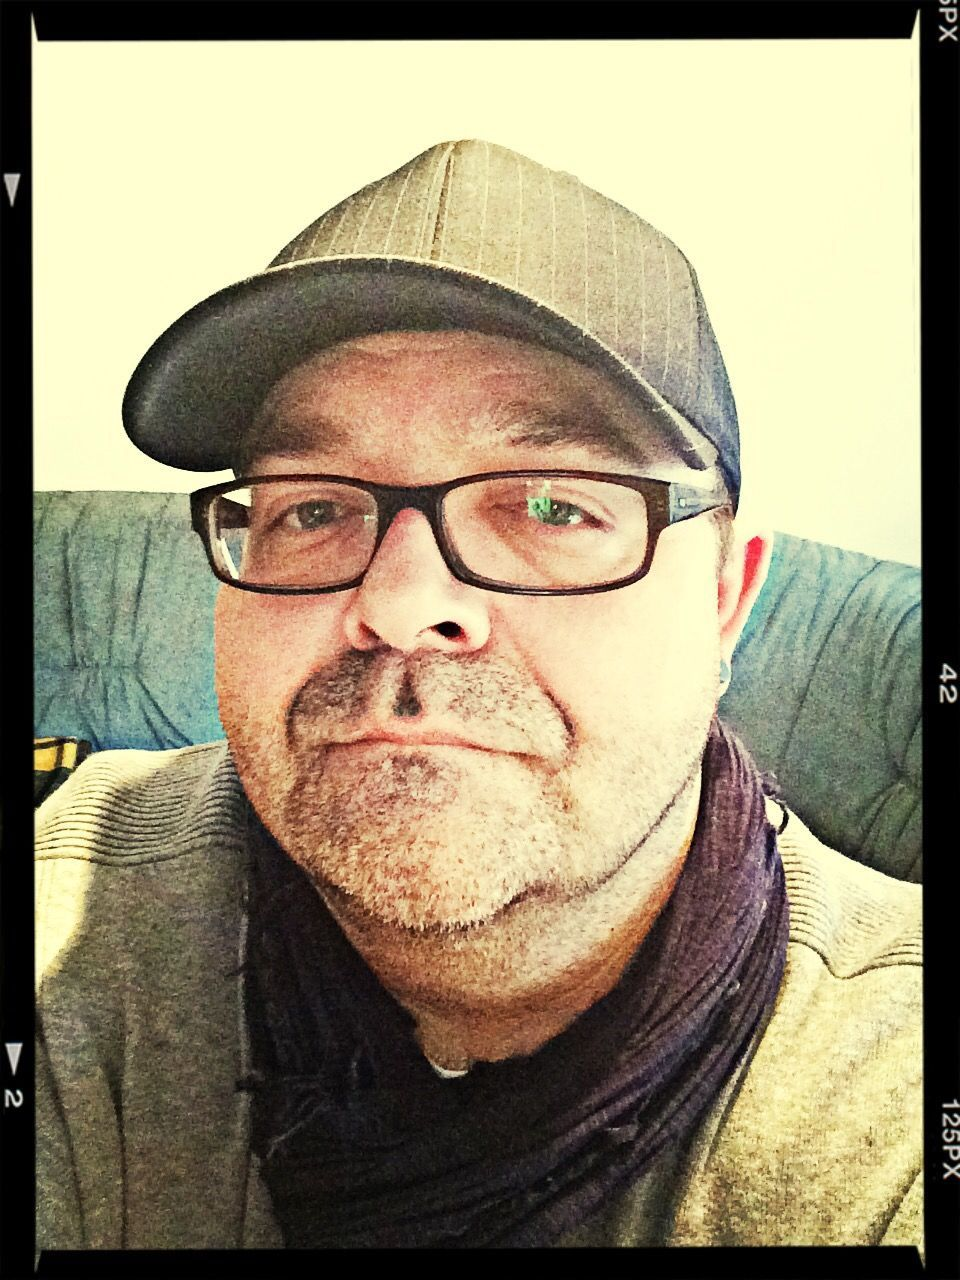 looking at camera, portrait, eyeglasses, front view, head and shoulders, glasses, one person, real people, headshot, mature men, cap, flat cap, lifestyles, mature adult, close-up, human face, day, young adult, indoors